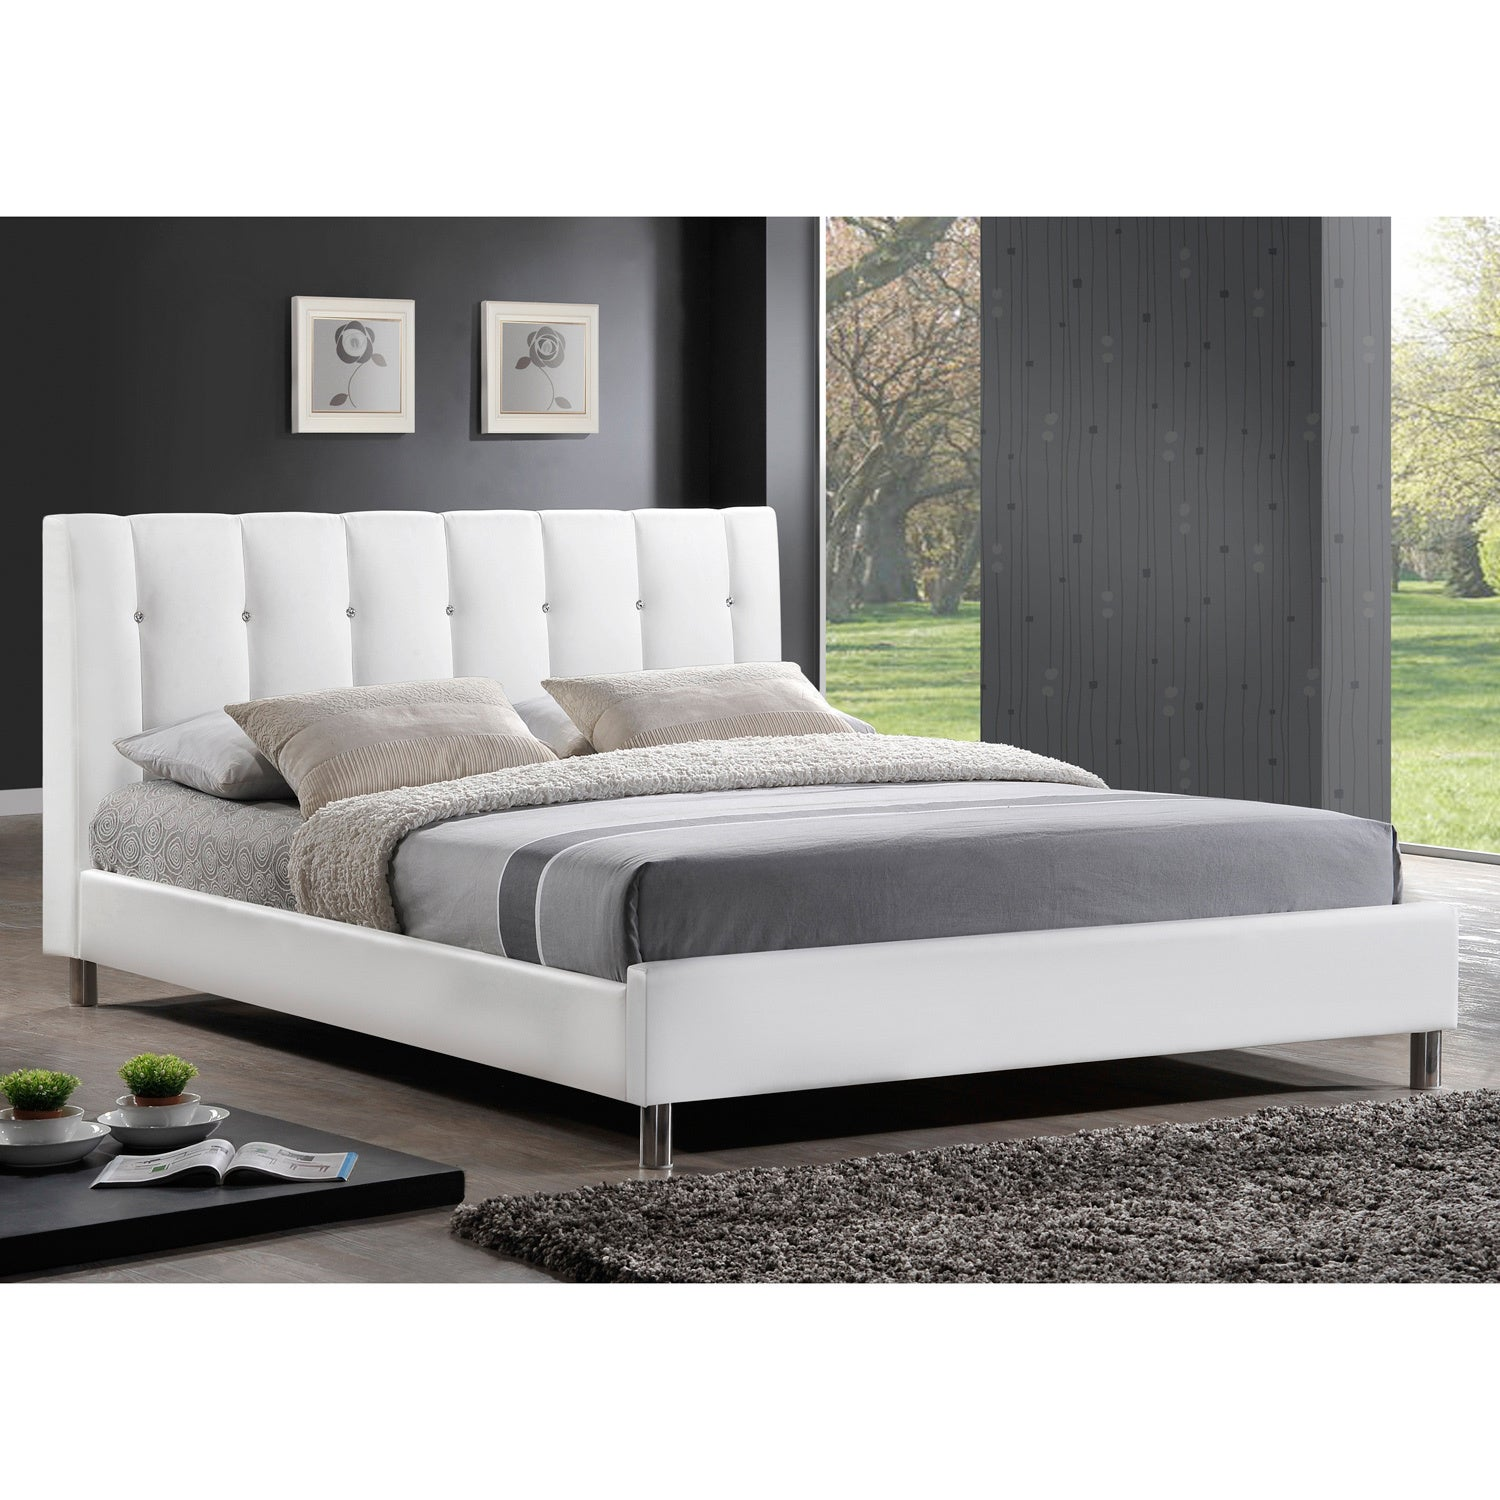 baxton studio vino modern queensize bed with upholstered headboard  freeshipping today  overstockcom  . baxton studio vino modern queensize bed with upholstered